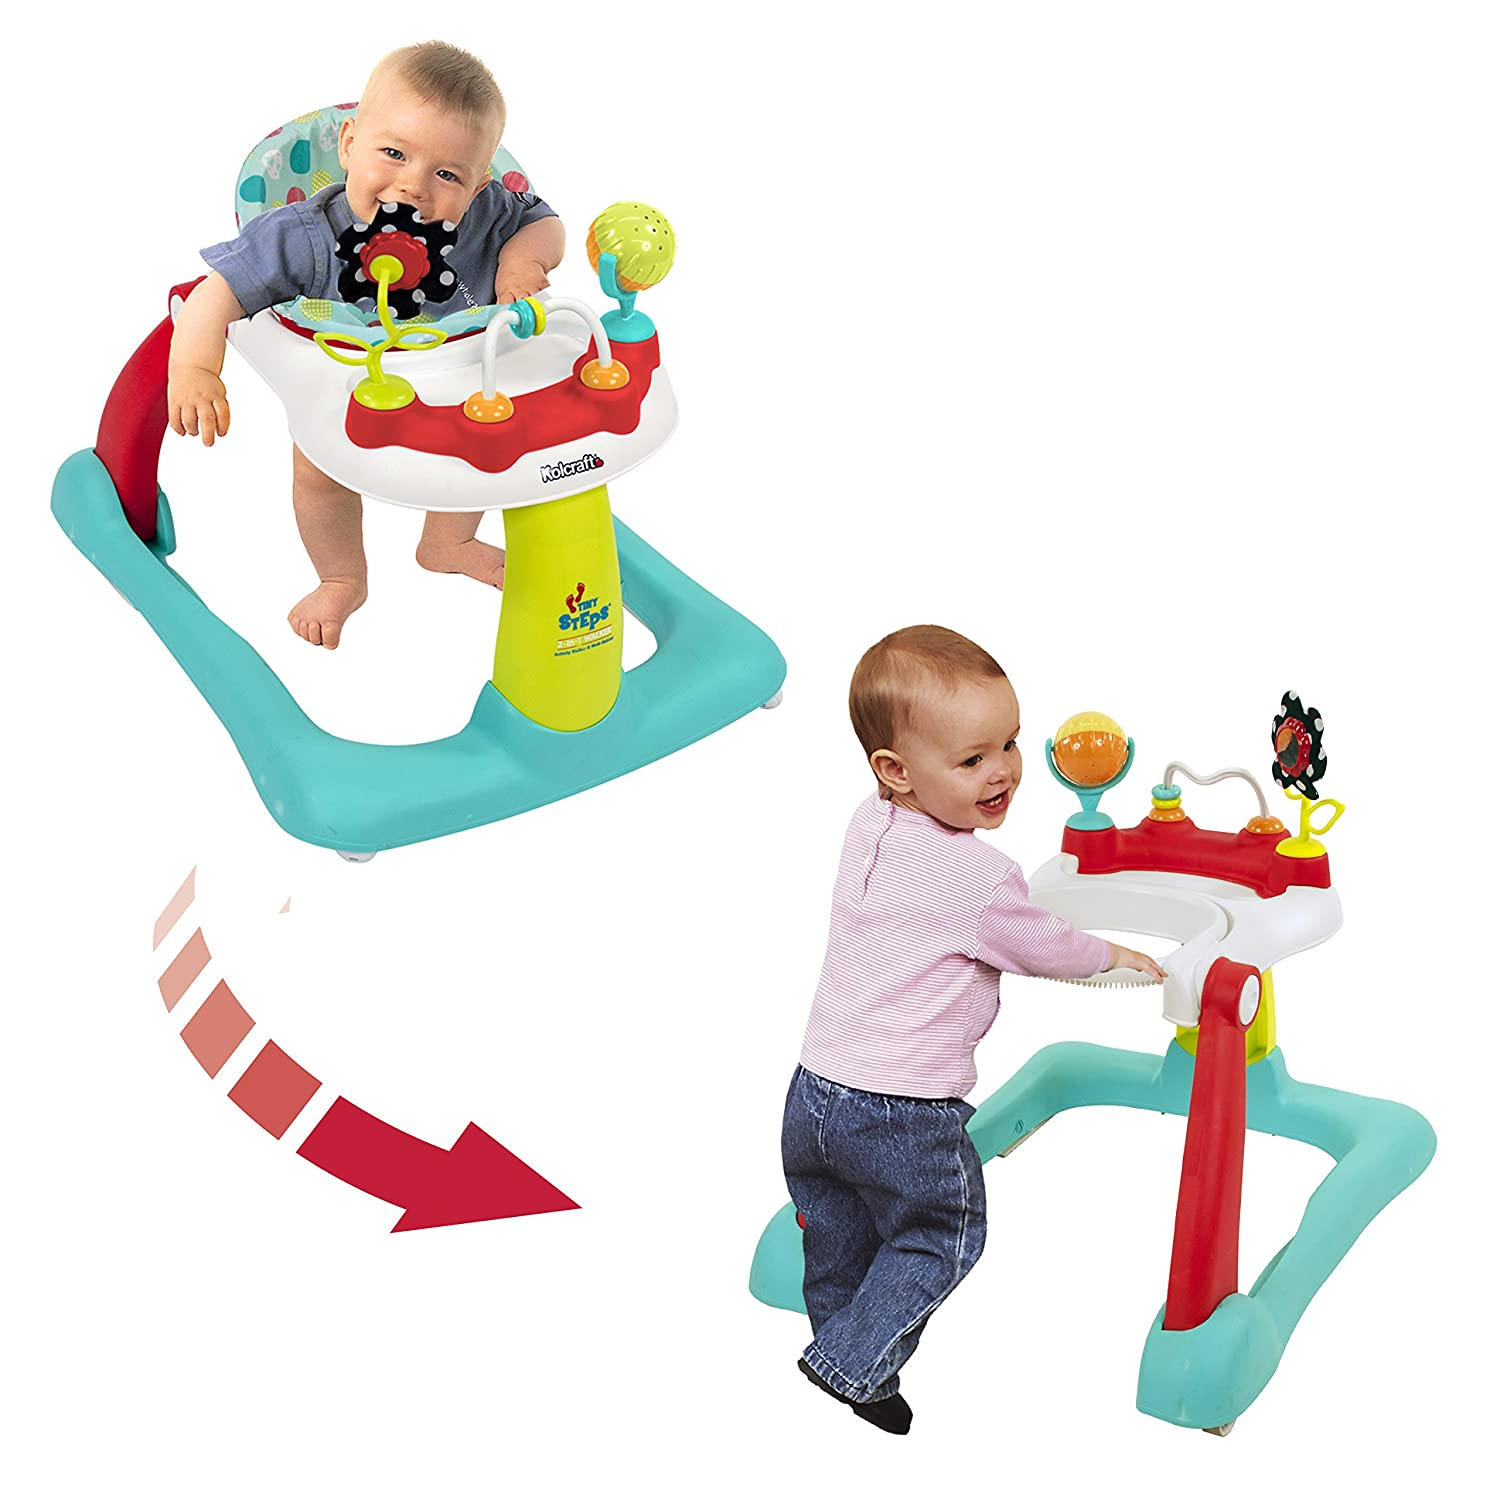 Top 15 Best Walking Toys for 1 Year Olds Mothers Should Consider 10